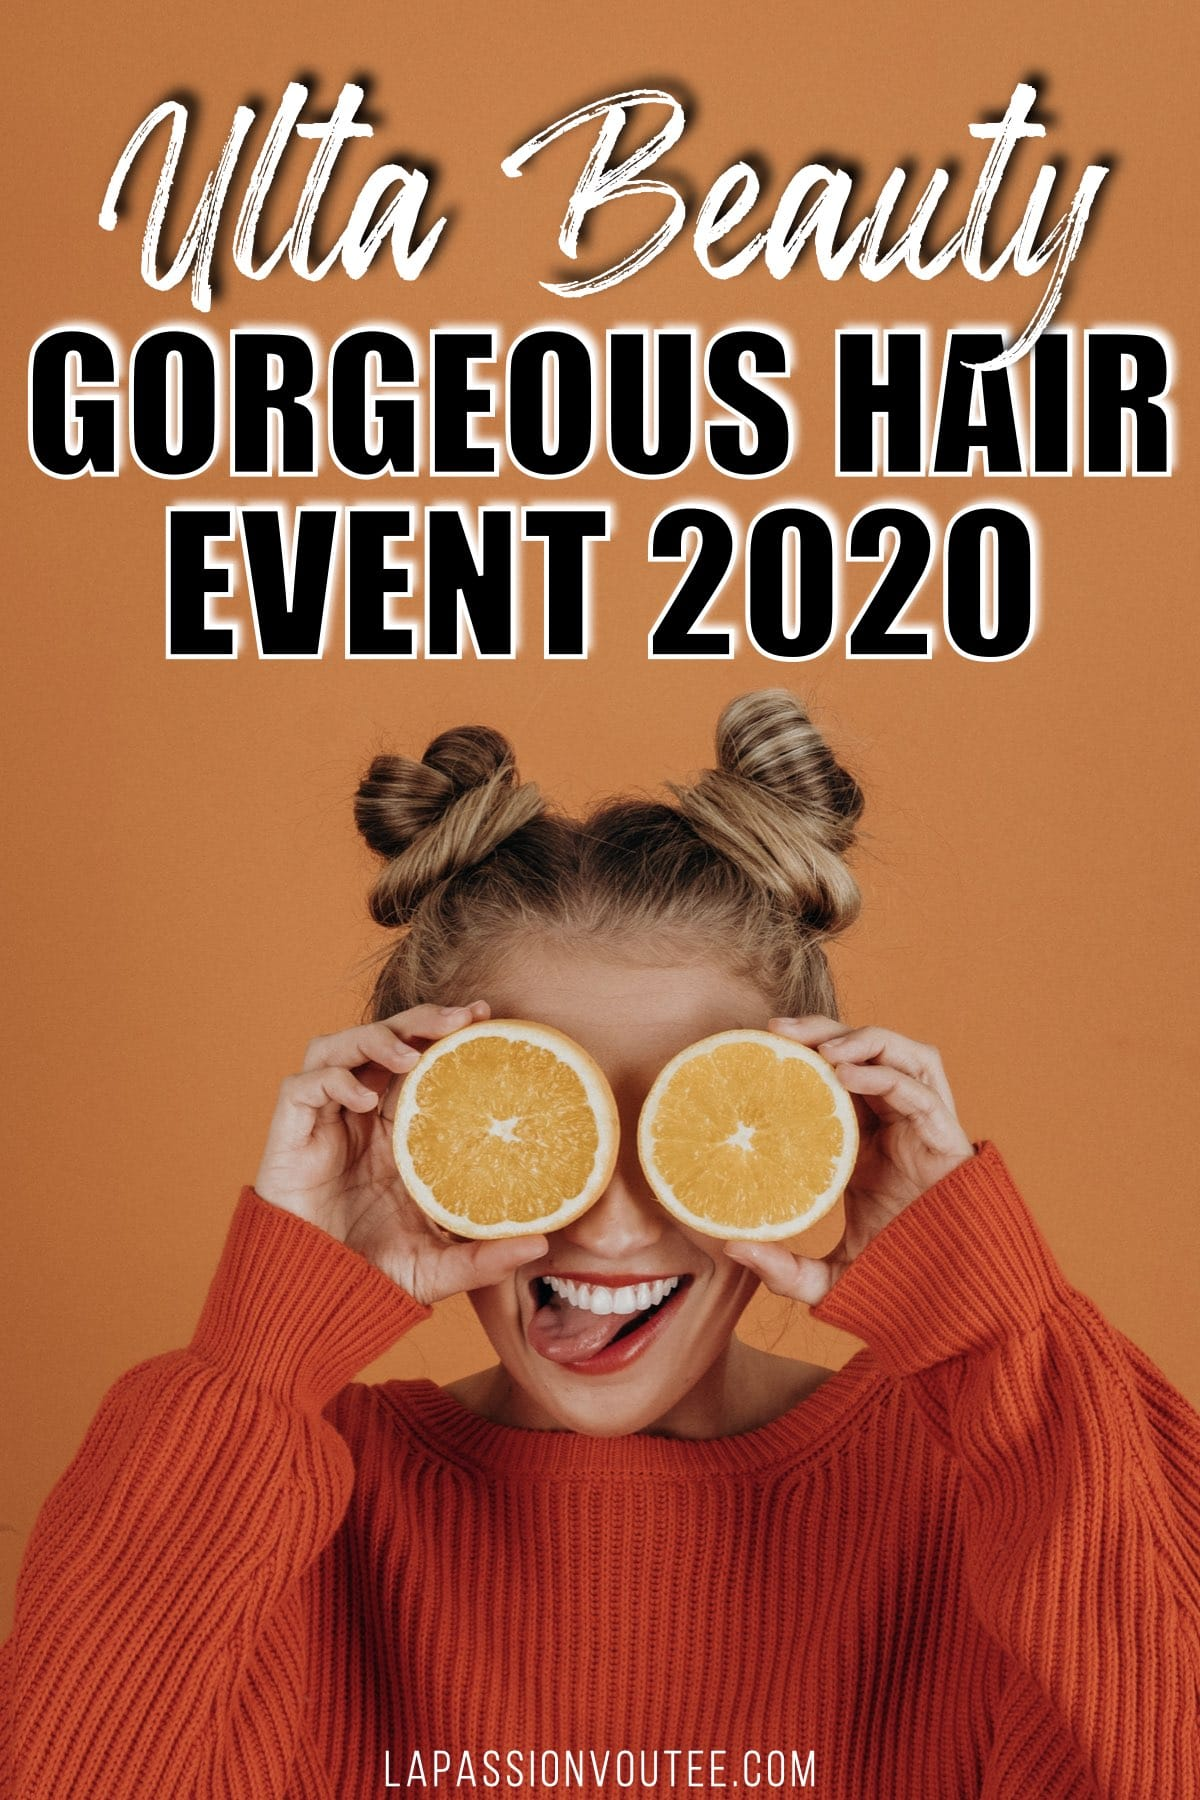 The 2020 Ulta Gorgeous Hair Event is live. The sale starts right now May 10 - May 30, 2020. Now's your chance to save 50% off the most loved brands for the next three weeks.